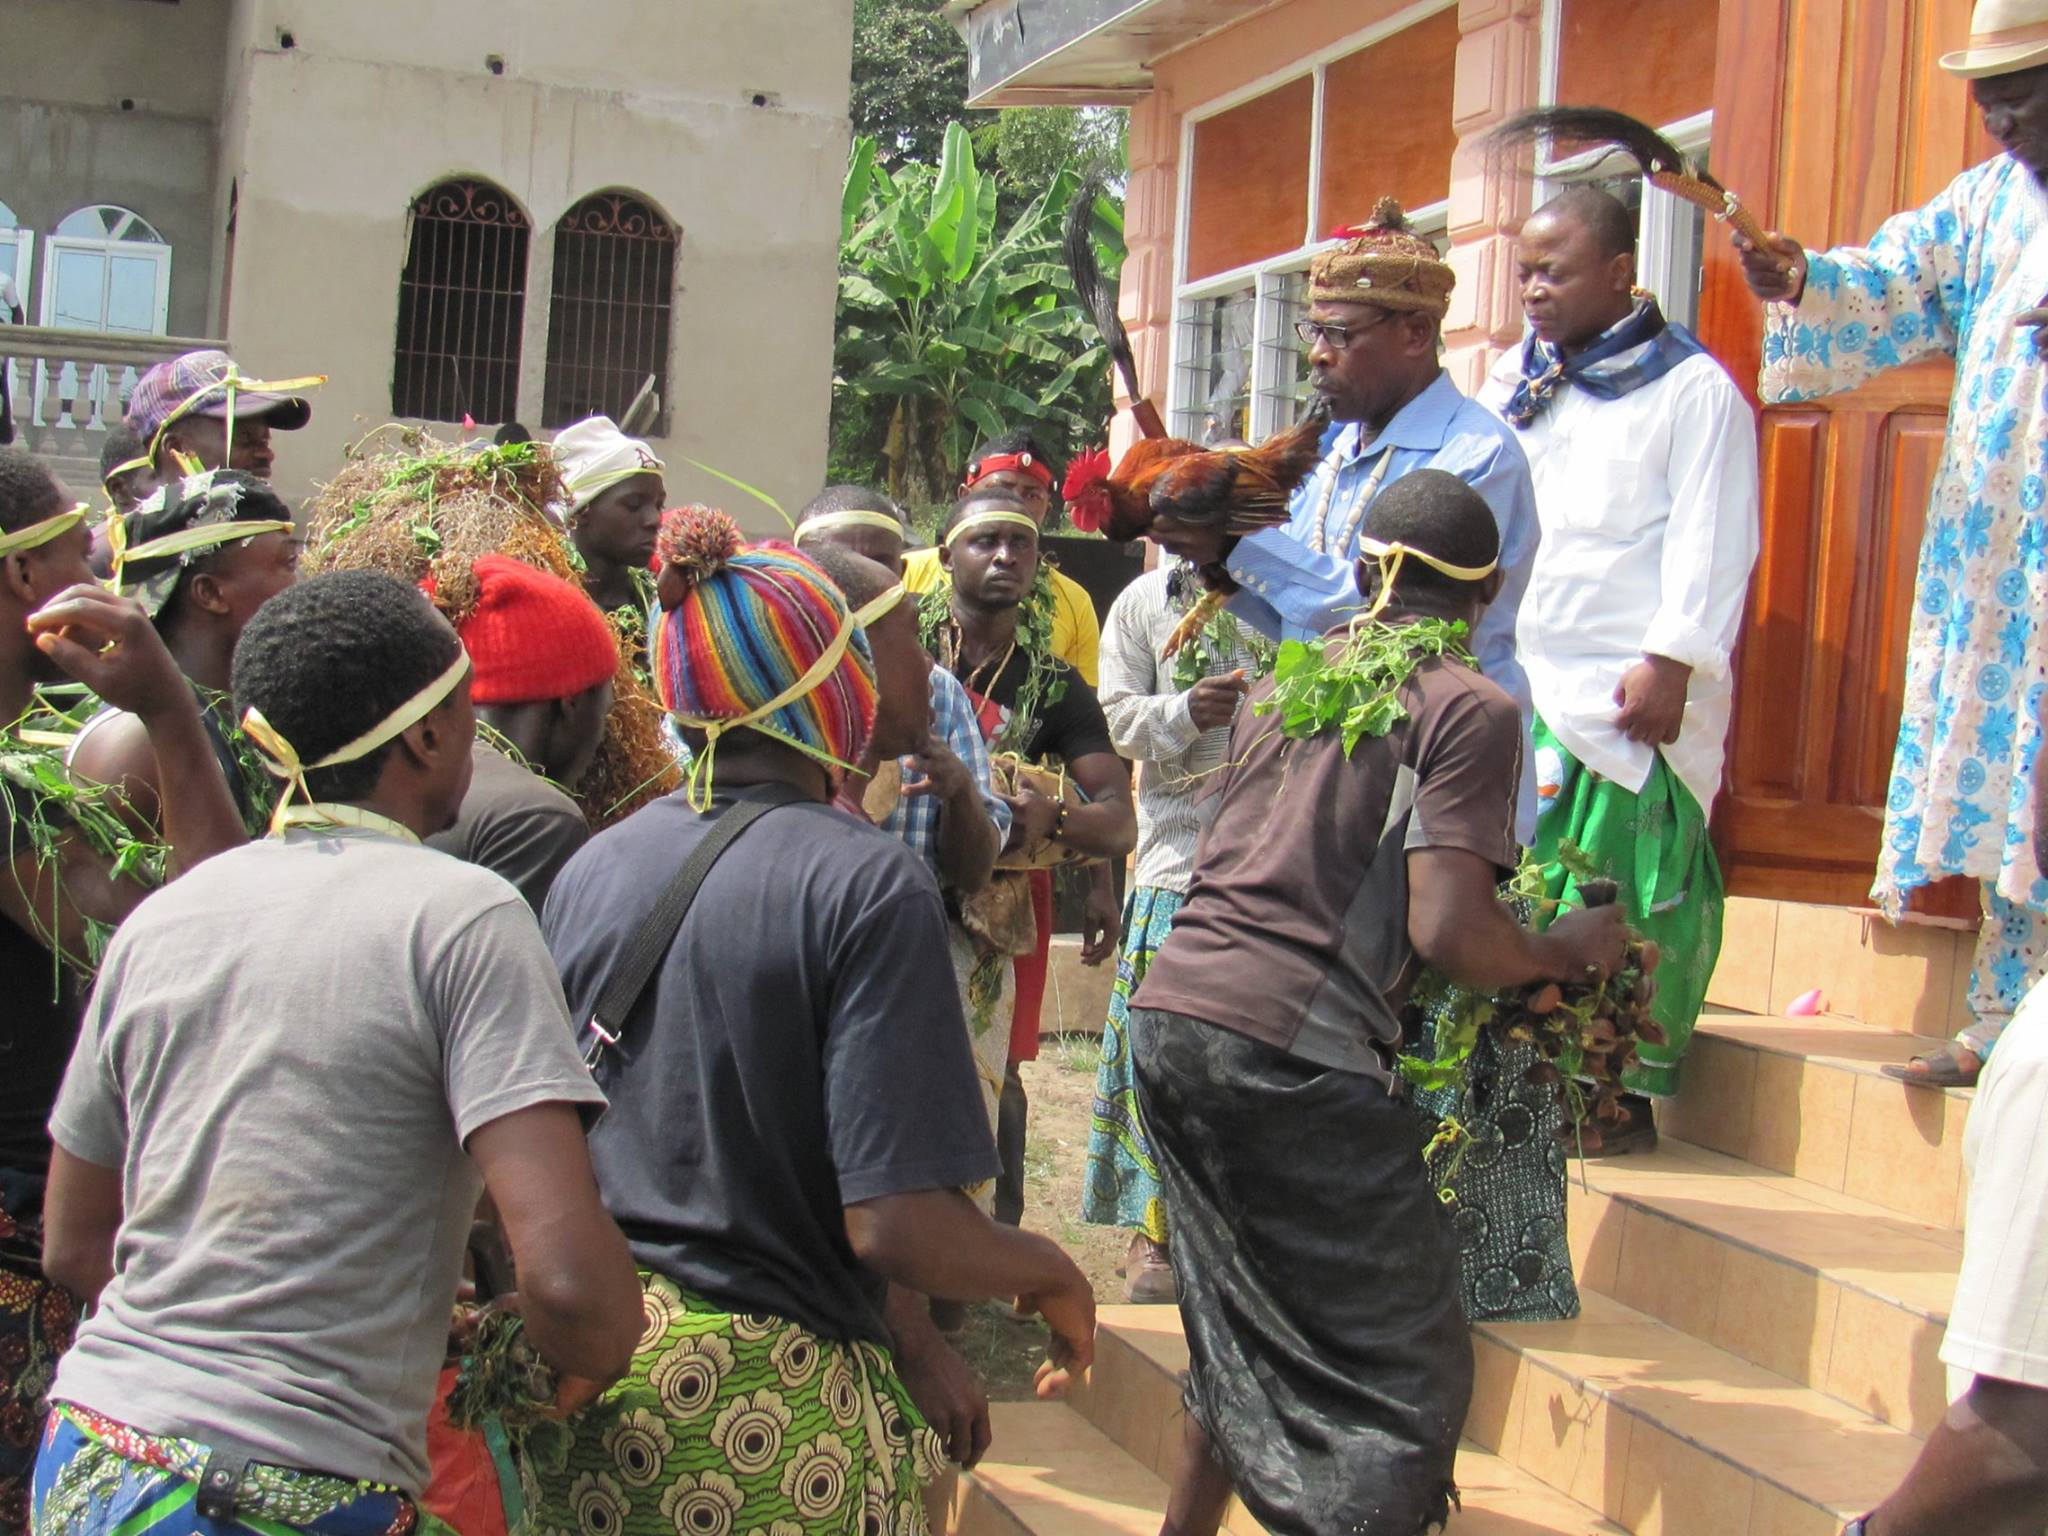 6a00d83451ce8669e201a511d01674970c pi Bakweri People:  Ancient Fierce Fighters, Traditionally Spiritual, Custom-Abiding And Agrarian Bantu People Of Mount Cameroon